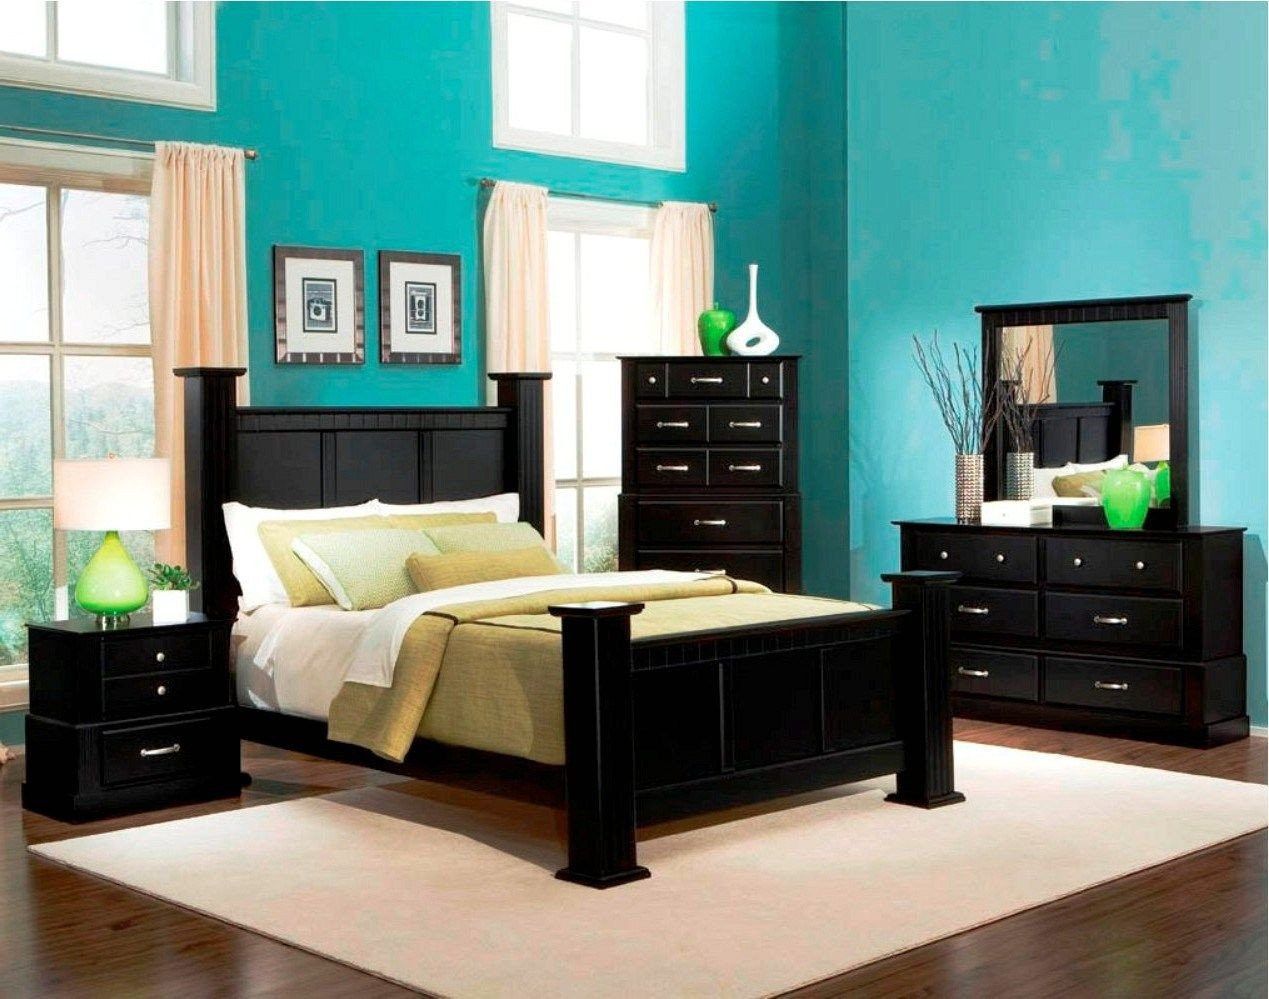 Blue Bedroom Furniture Set Unique Wooden Bed Designs Bed Designs for Boys Bed Design Lahore